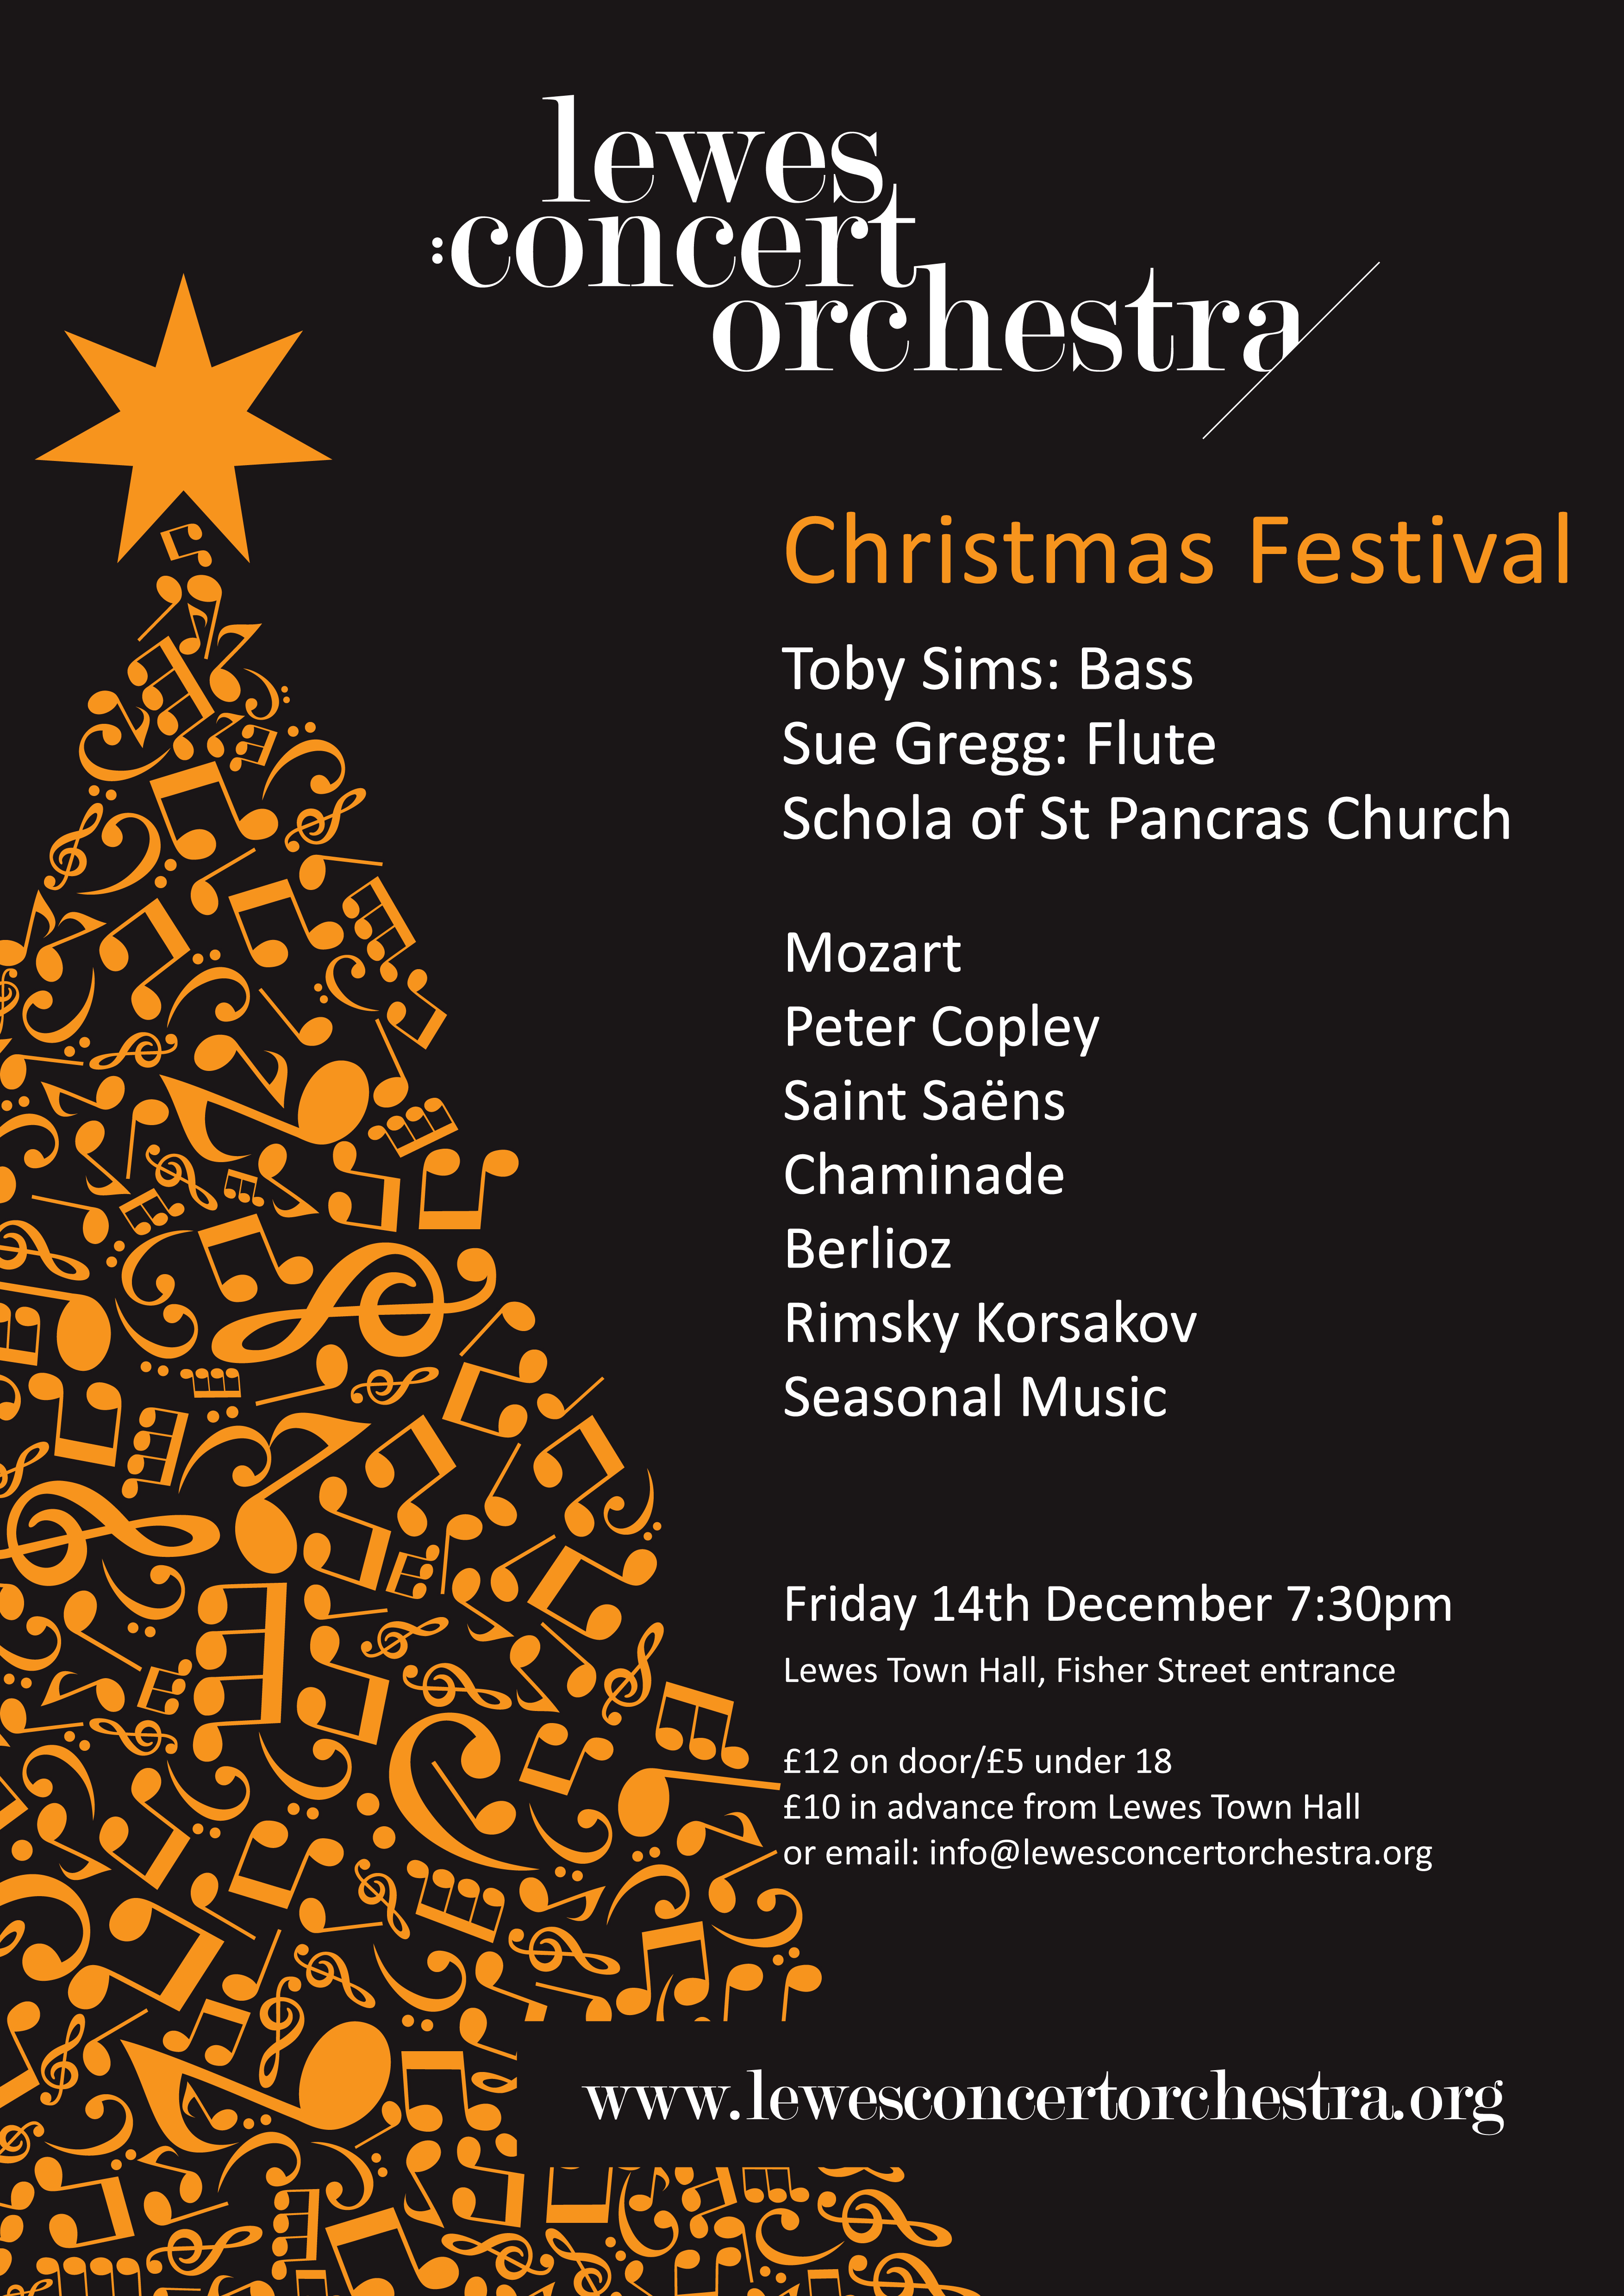 Lewes Concert Orchestra Christmas Concert